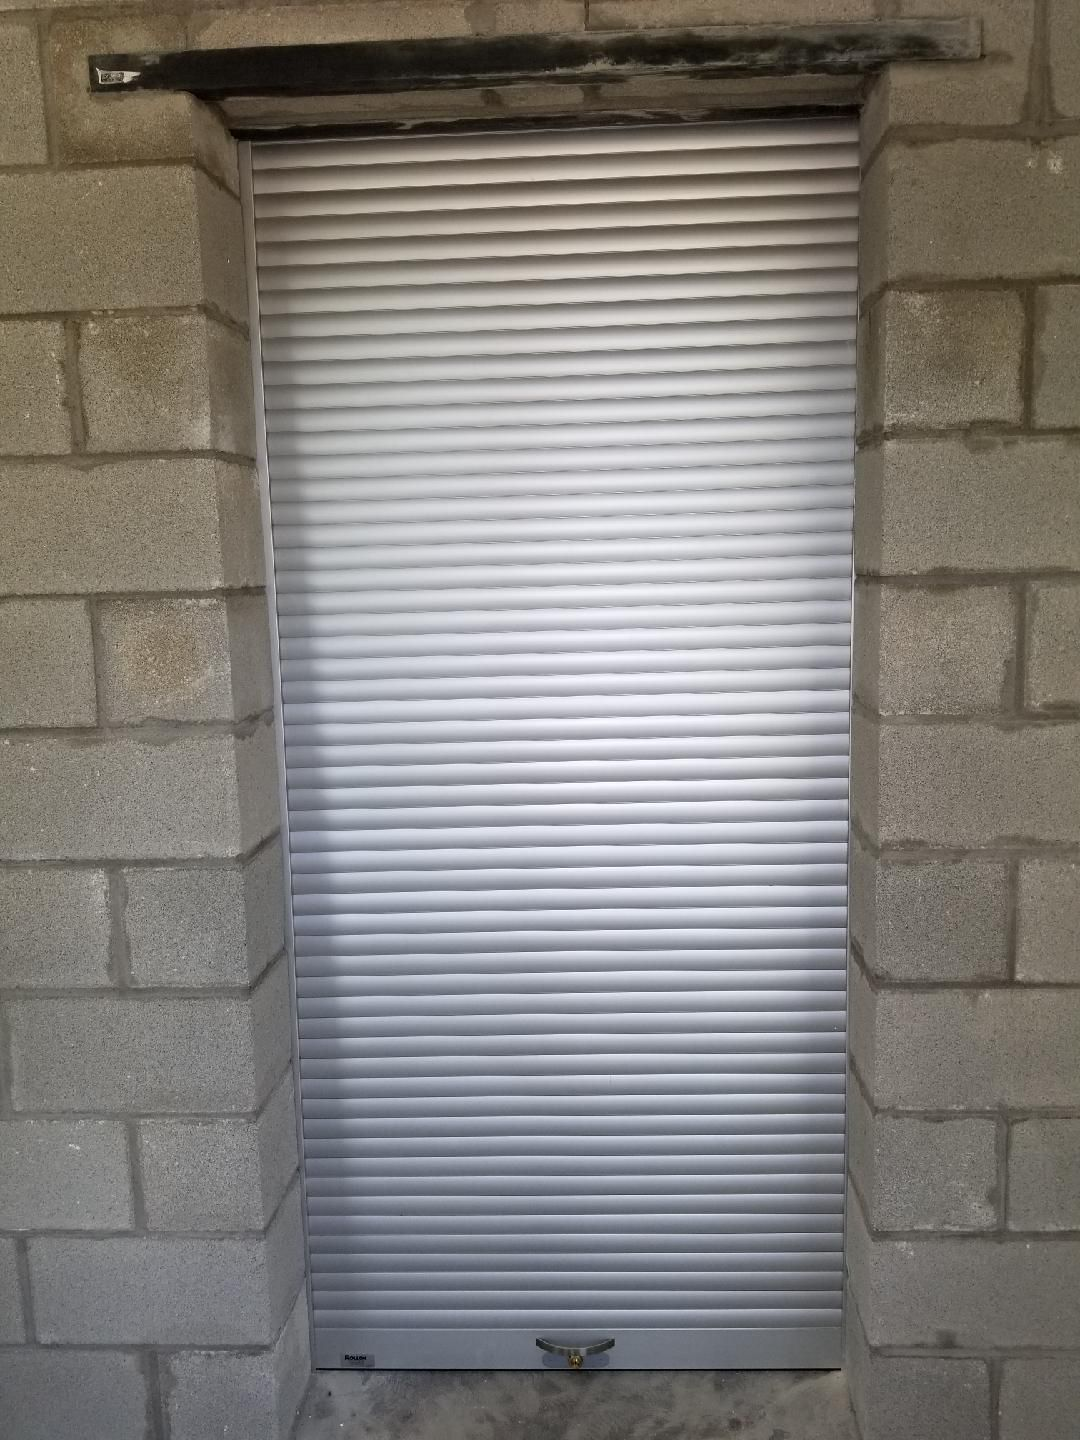 Does Your Business Need Another Level Of Protection A Rollok Rolling Security Shutter Or Door Can Be Built Aluminum Shutters Modern Shutters Plastic Shutters